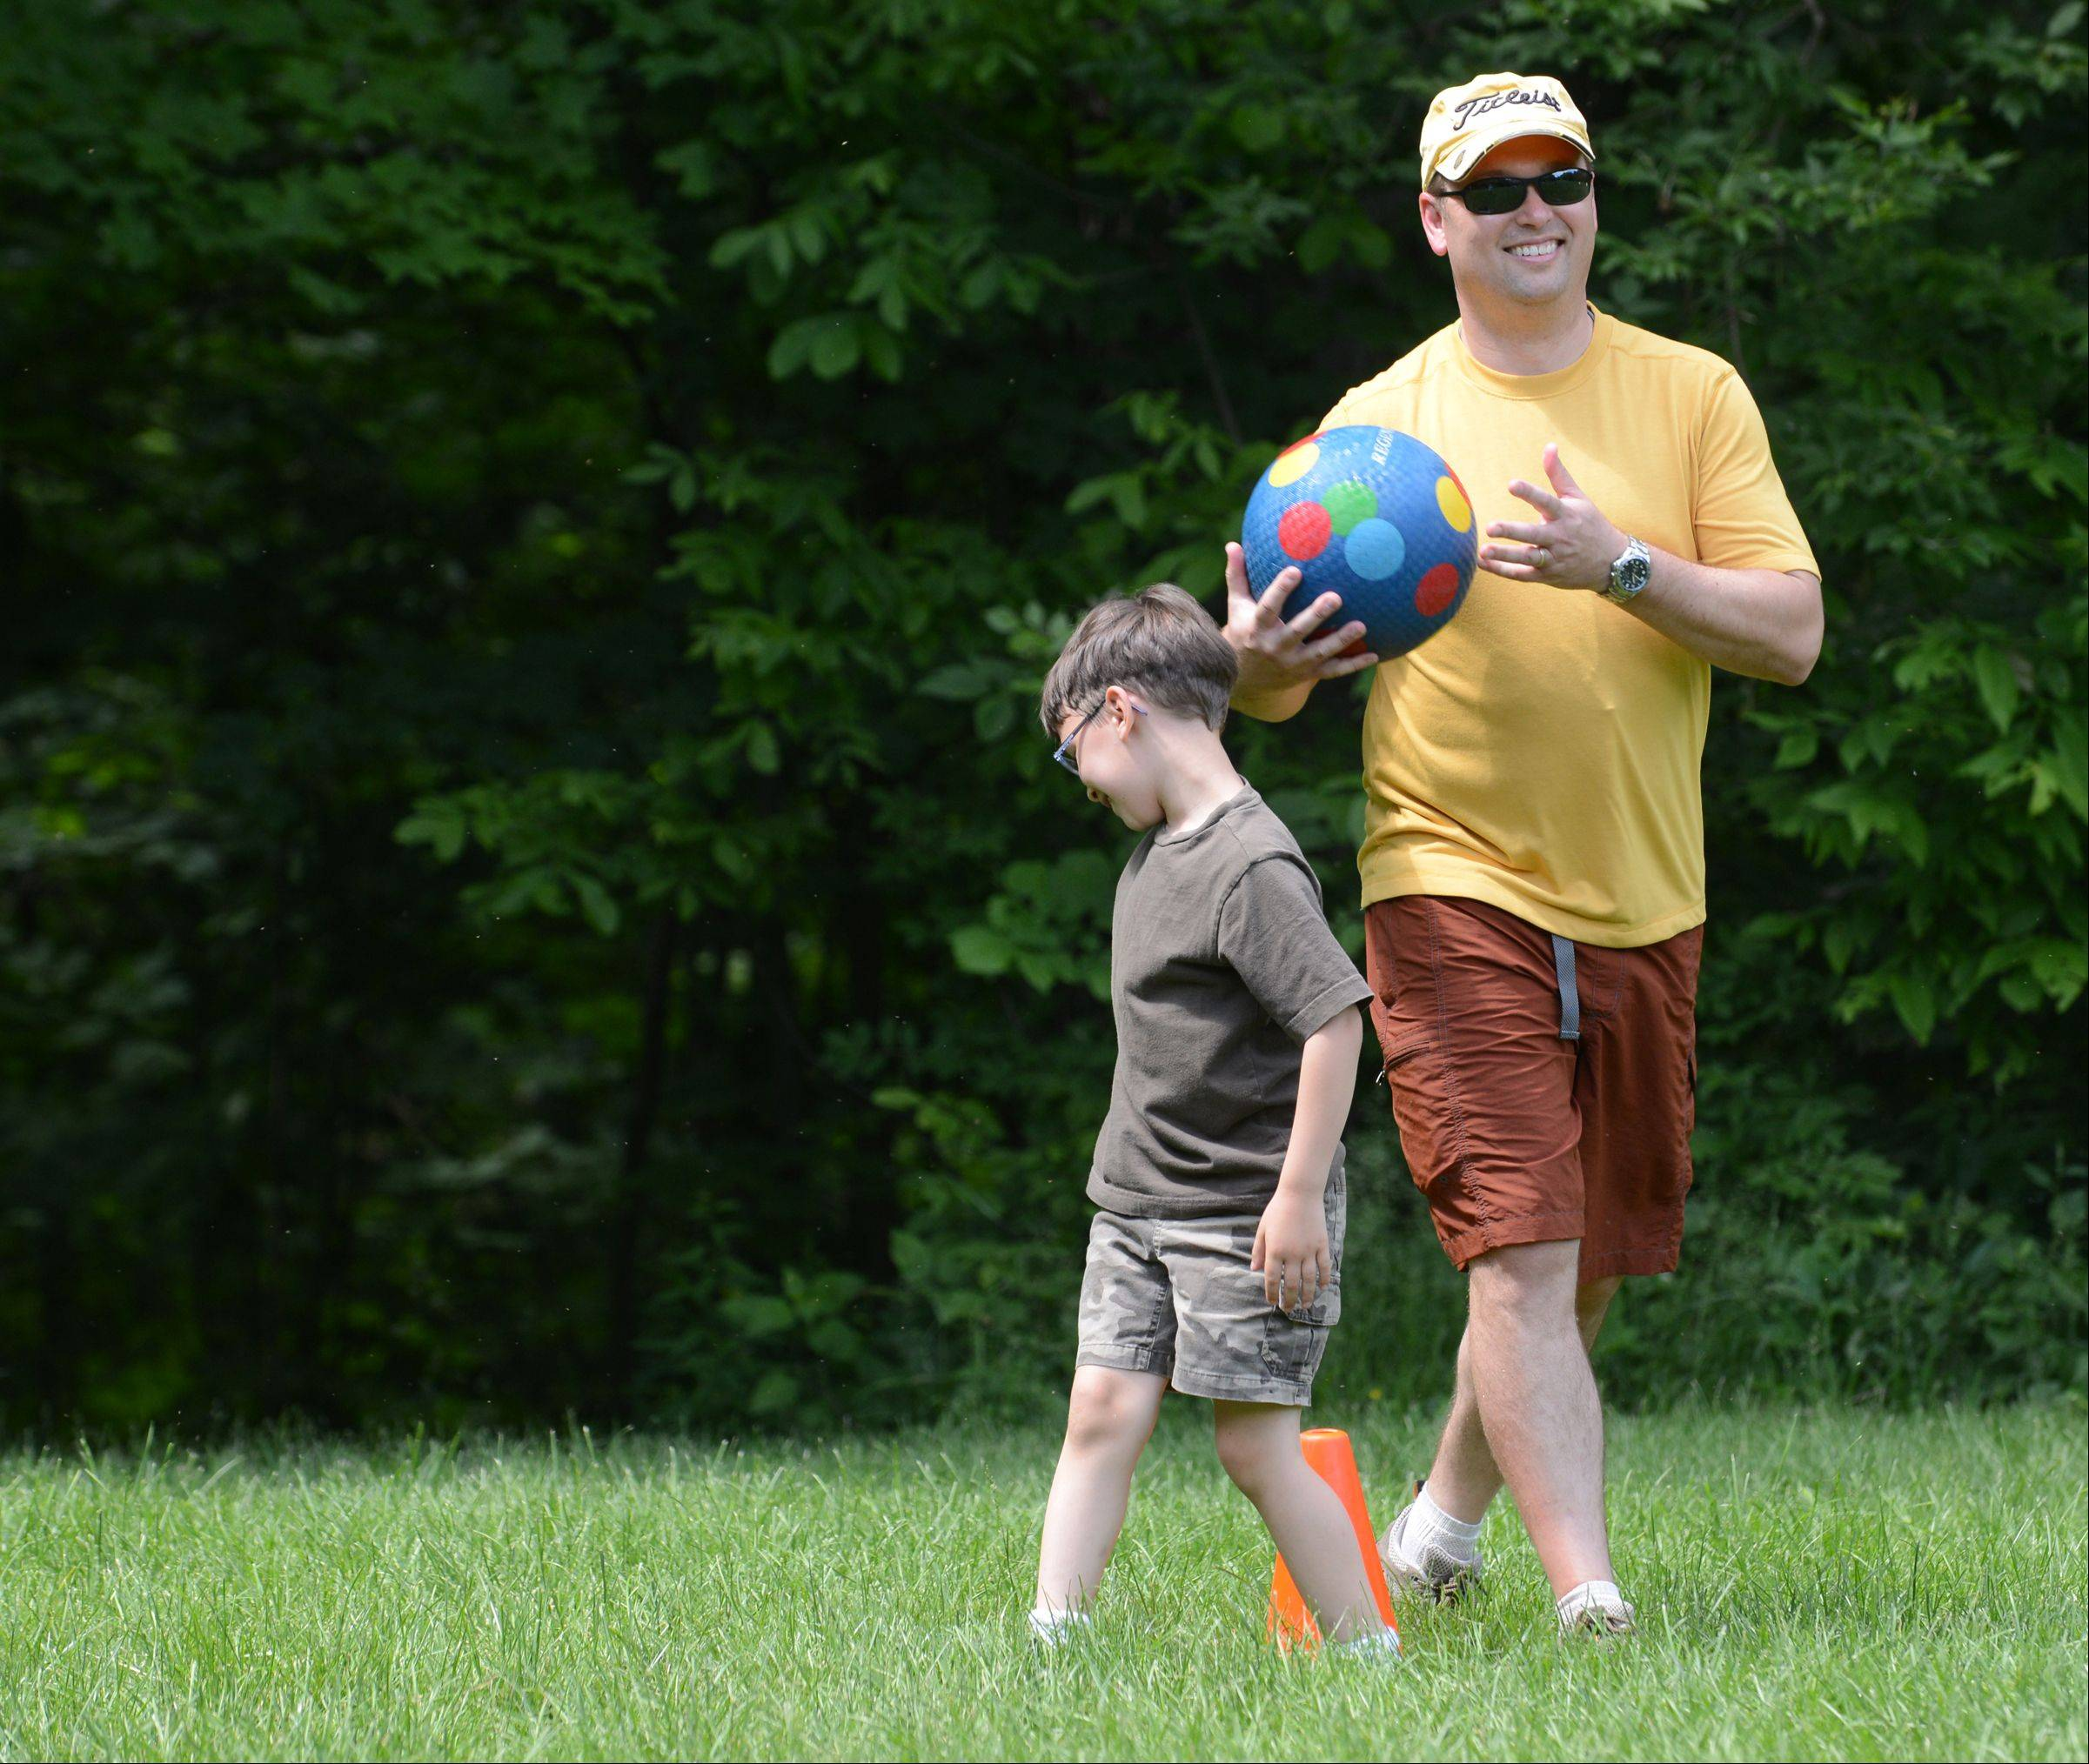 Royal Family Kids Camp counselor Mike Douglass of Geneva on the kick ball field with a camper.